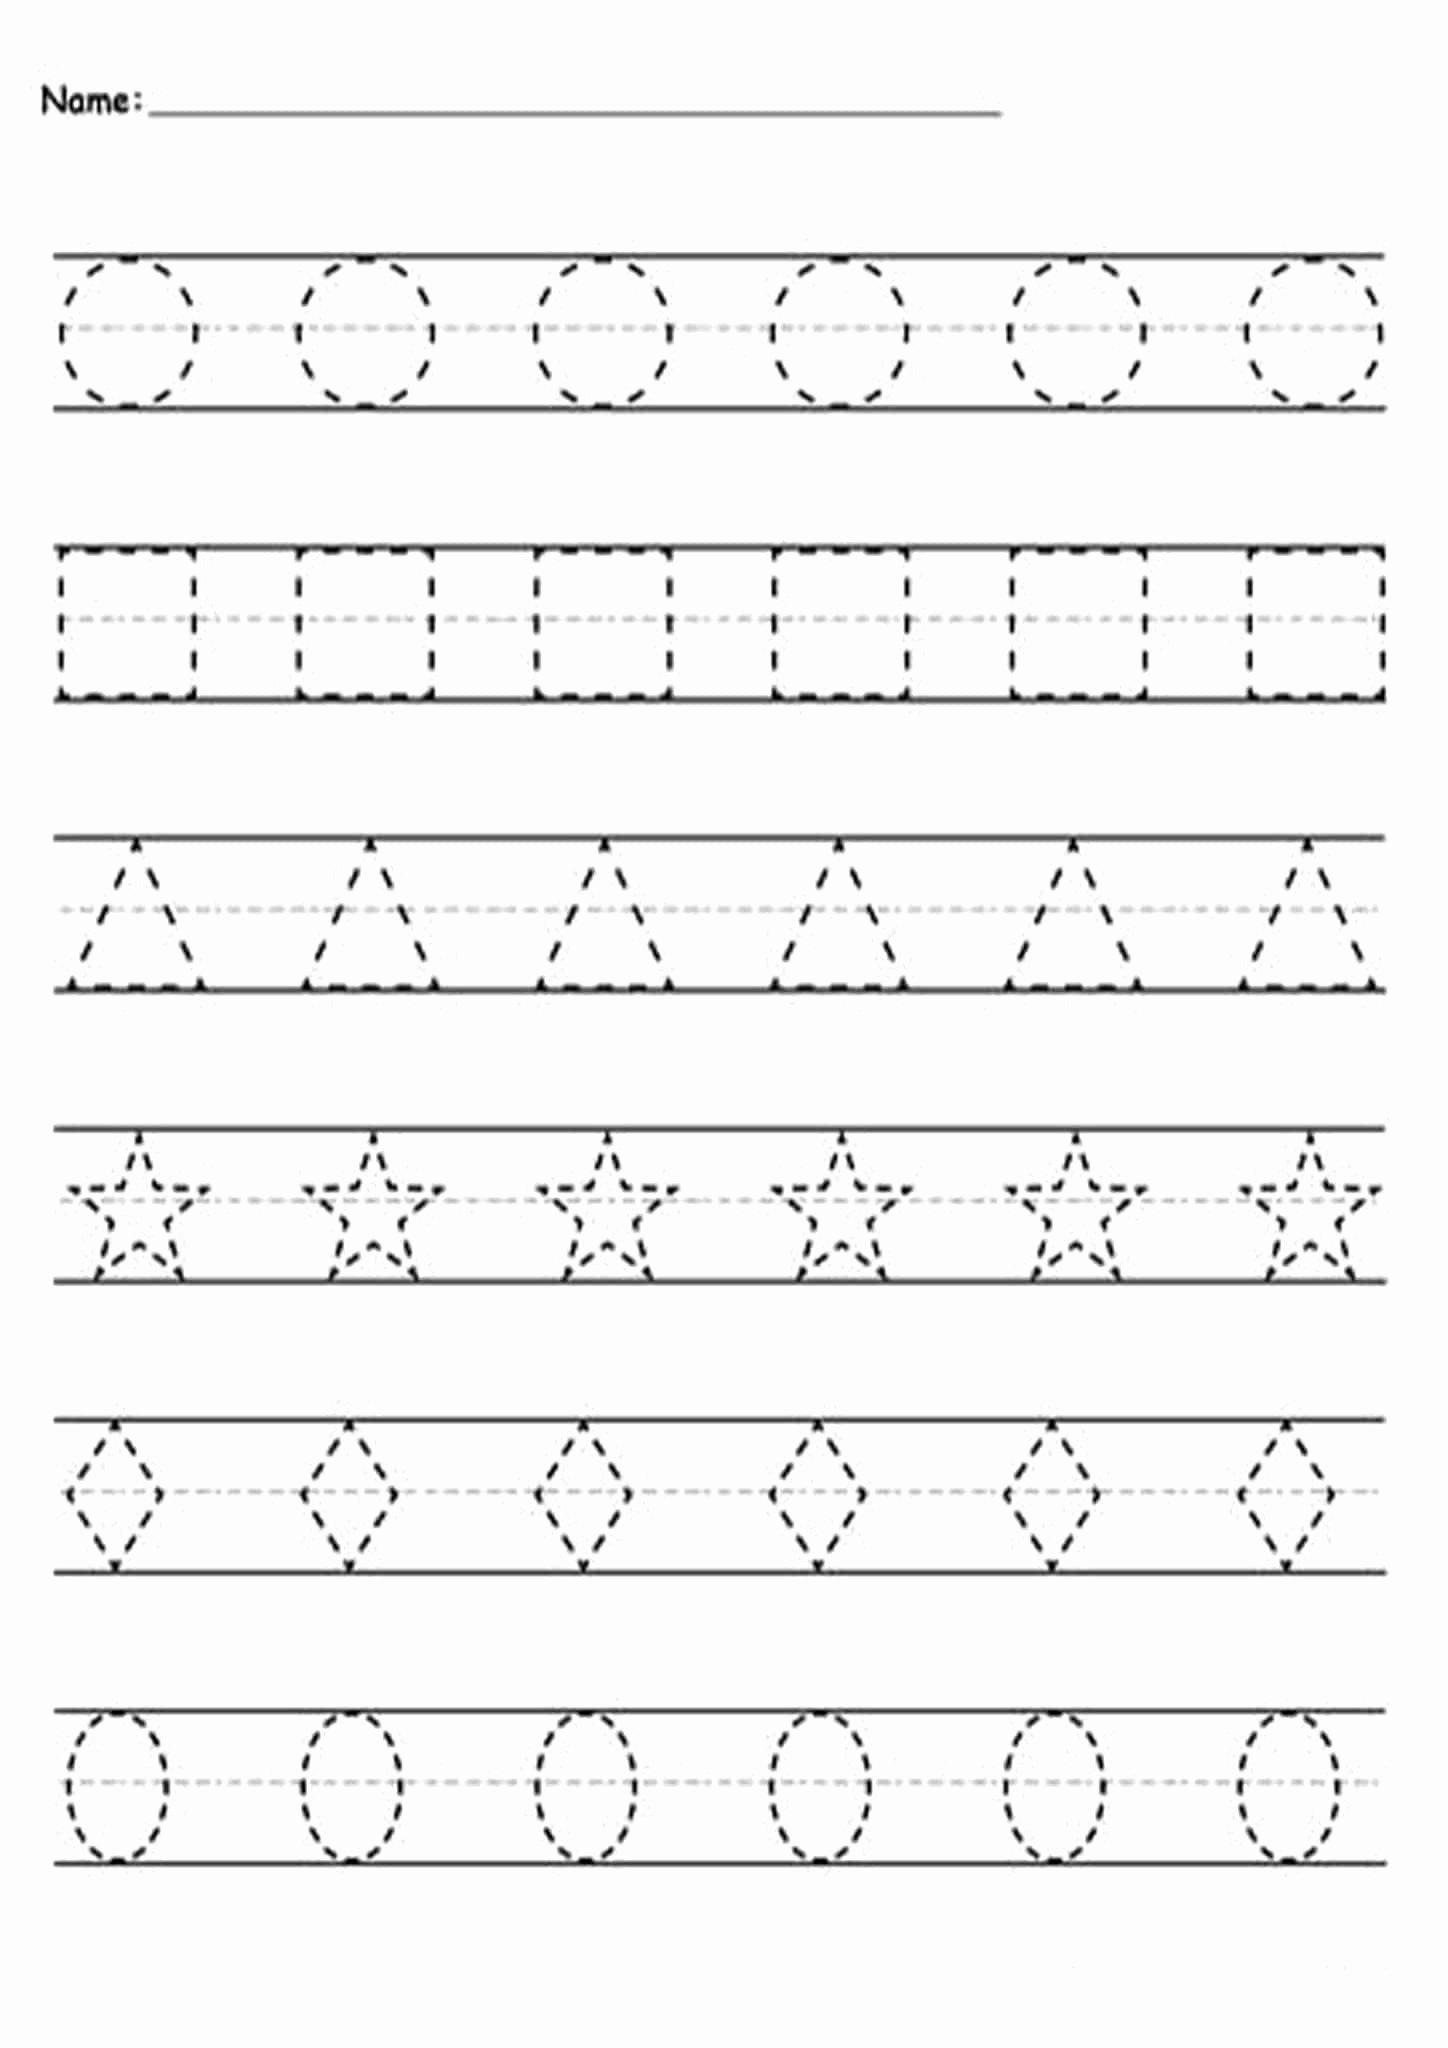 Tracing Lines Worksheets for Preschoolers New Free and Easy to Print Tracing Lines Worksheets Tulamama